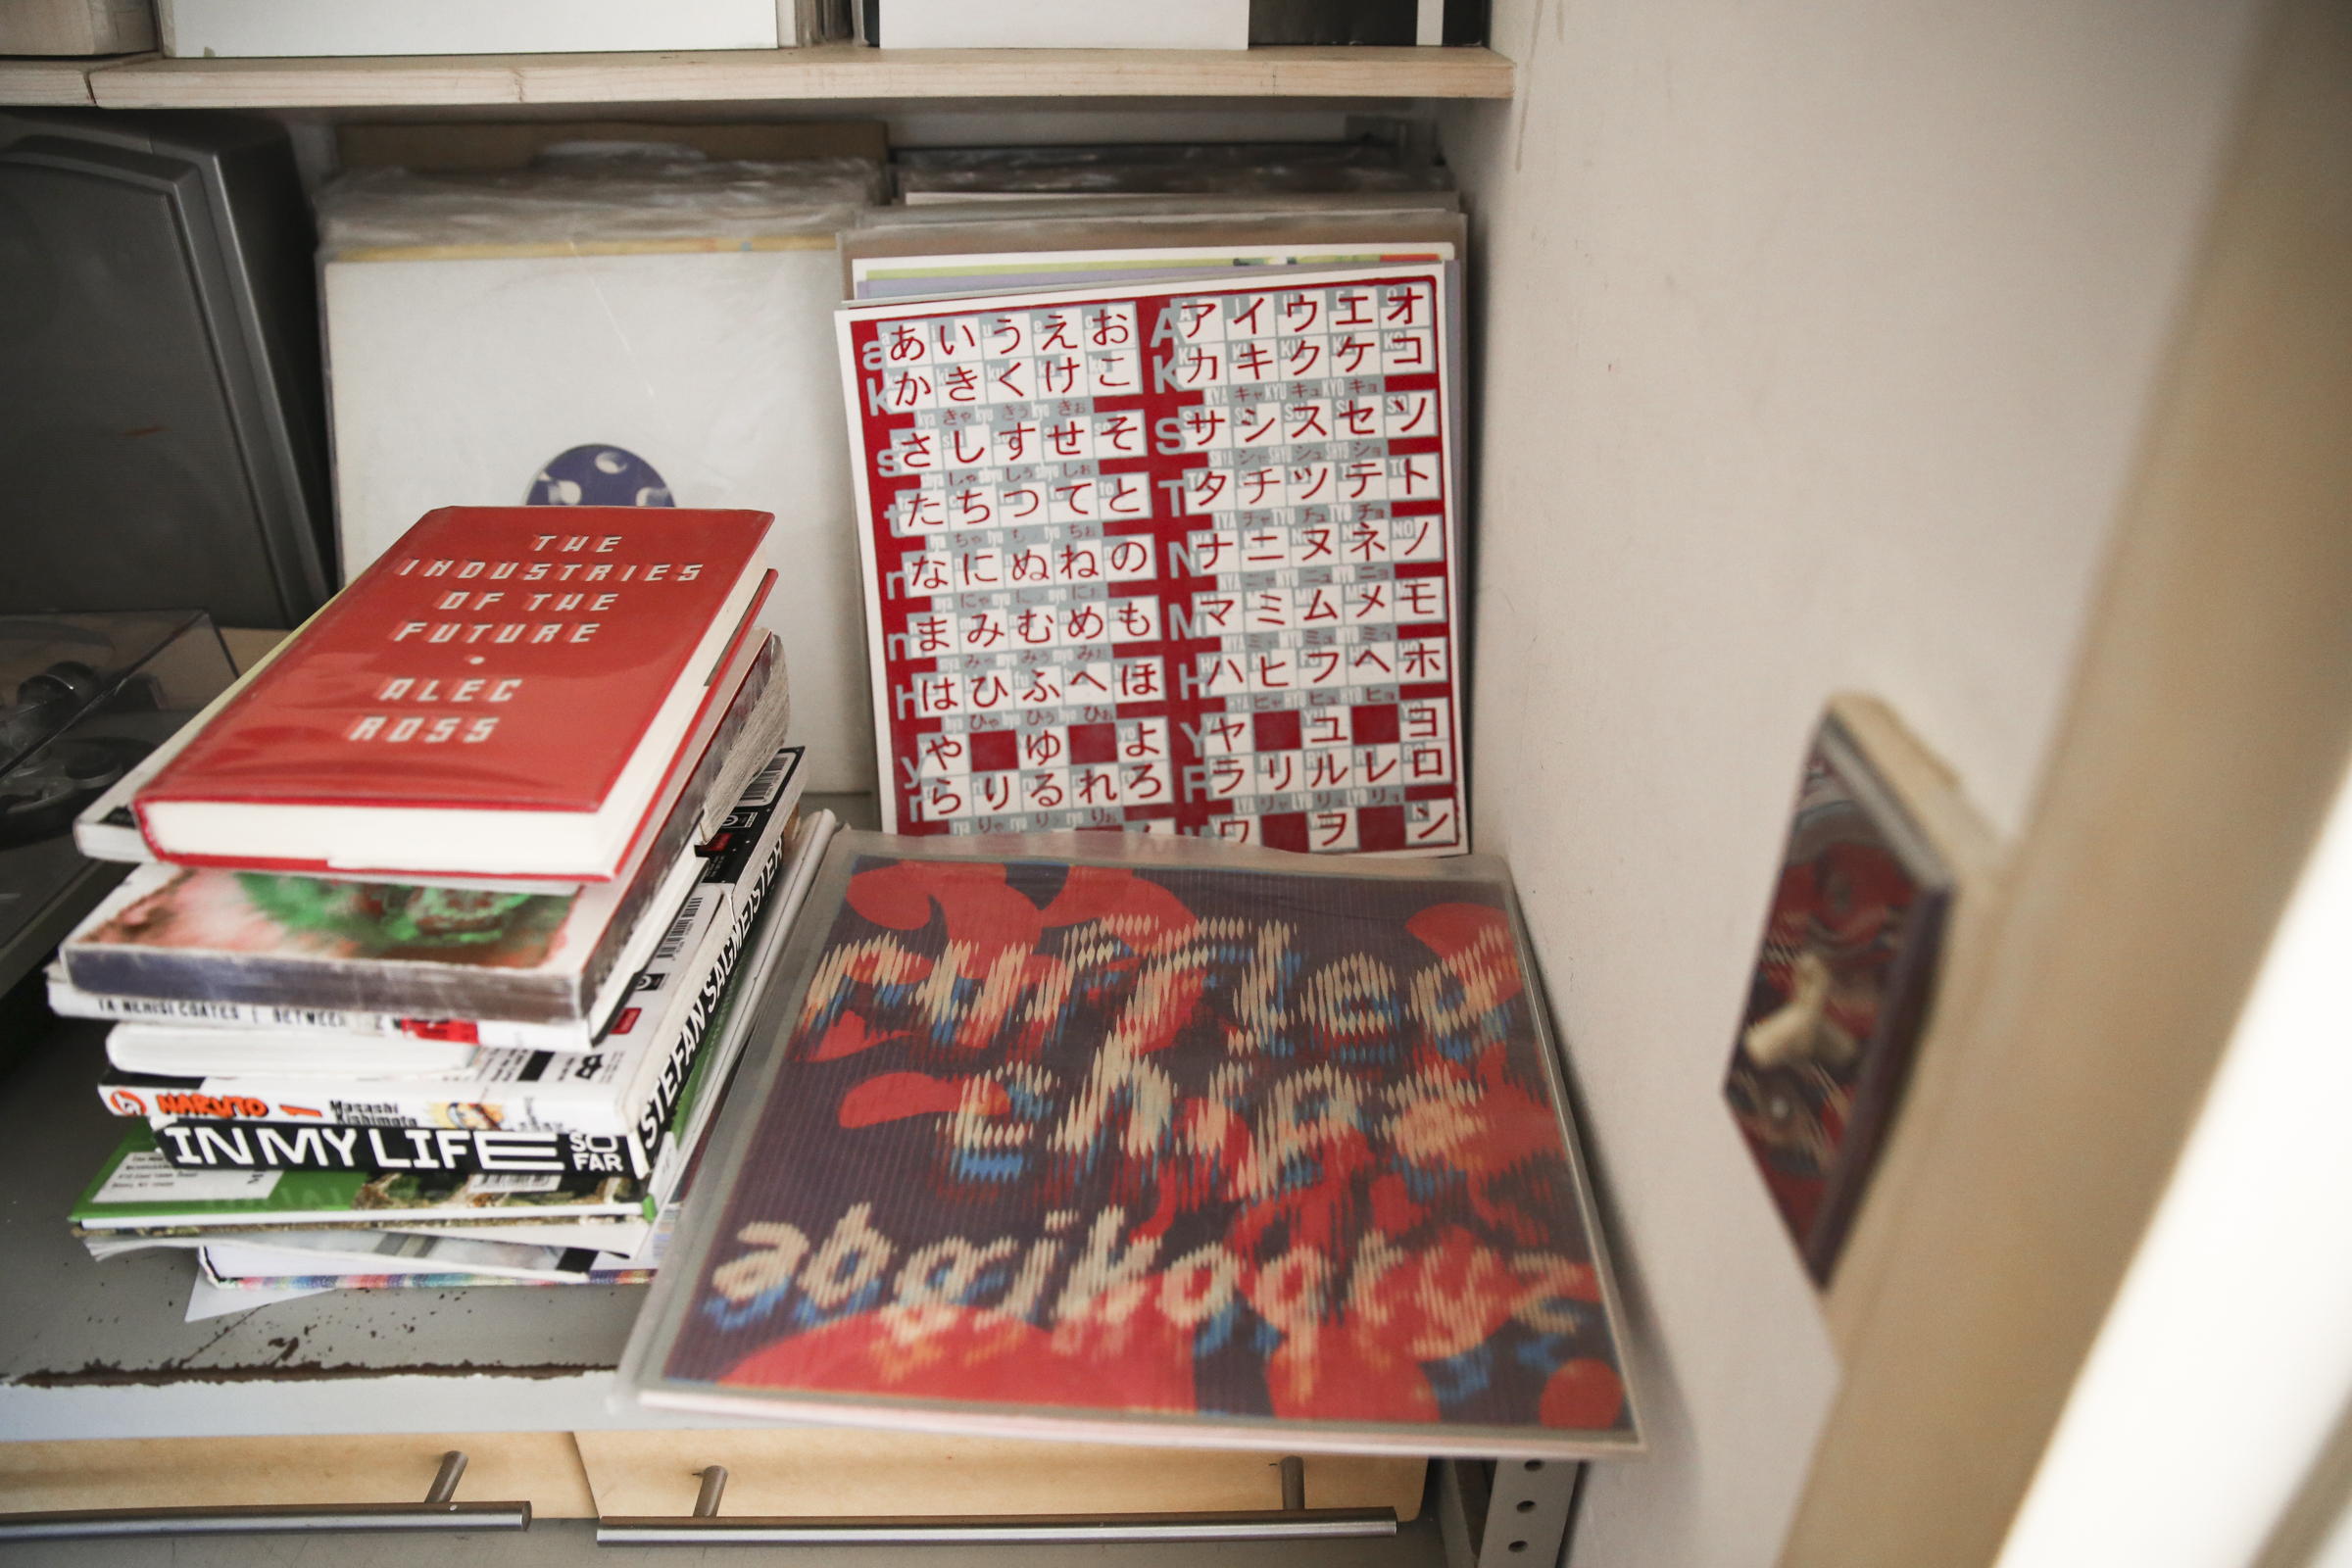 "The finished versions ""ruffled chips"" and the Japanese language typography silkscreens near Anselm's music station. A stack of library books waiting to be returned stands to the left."